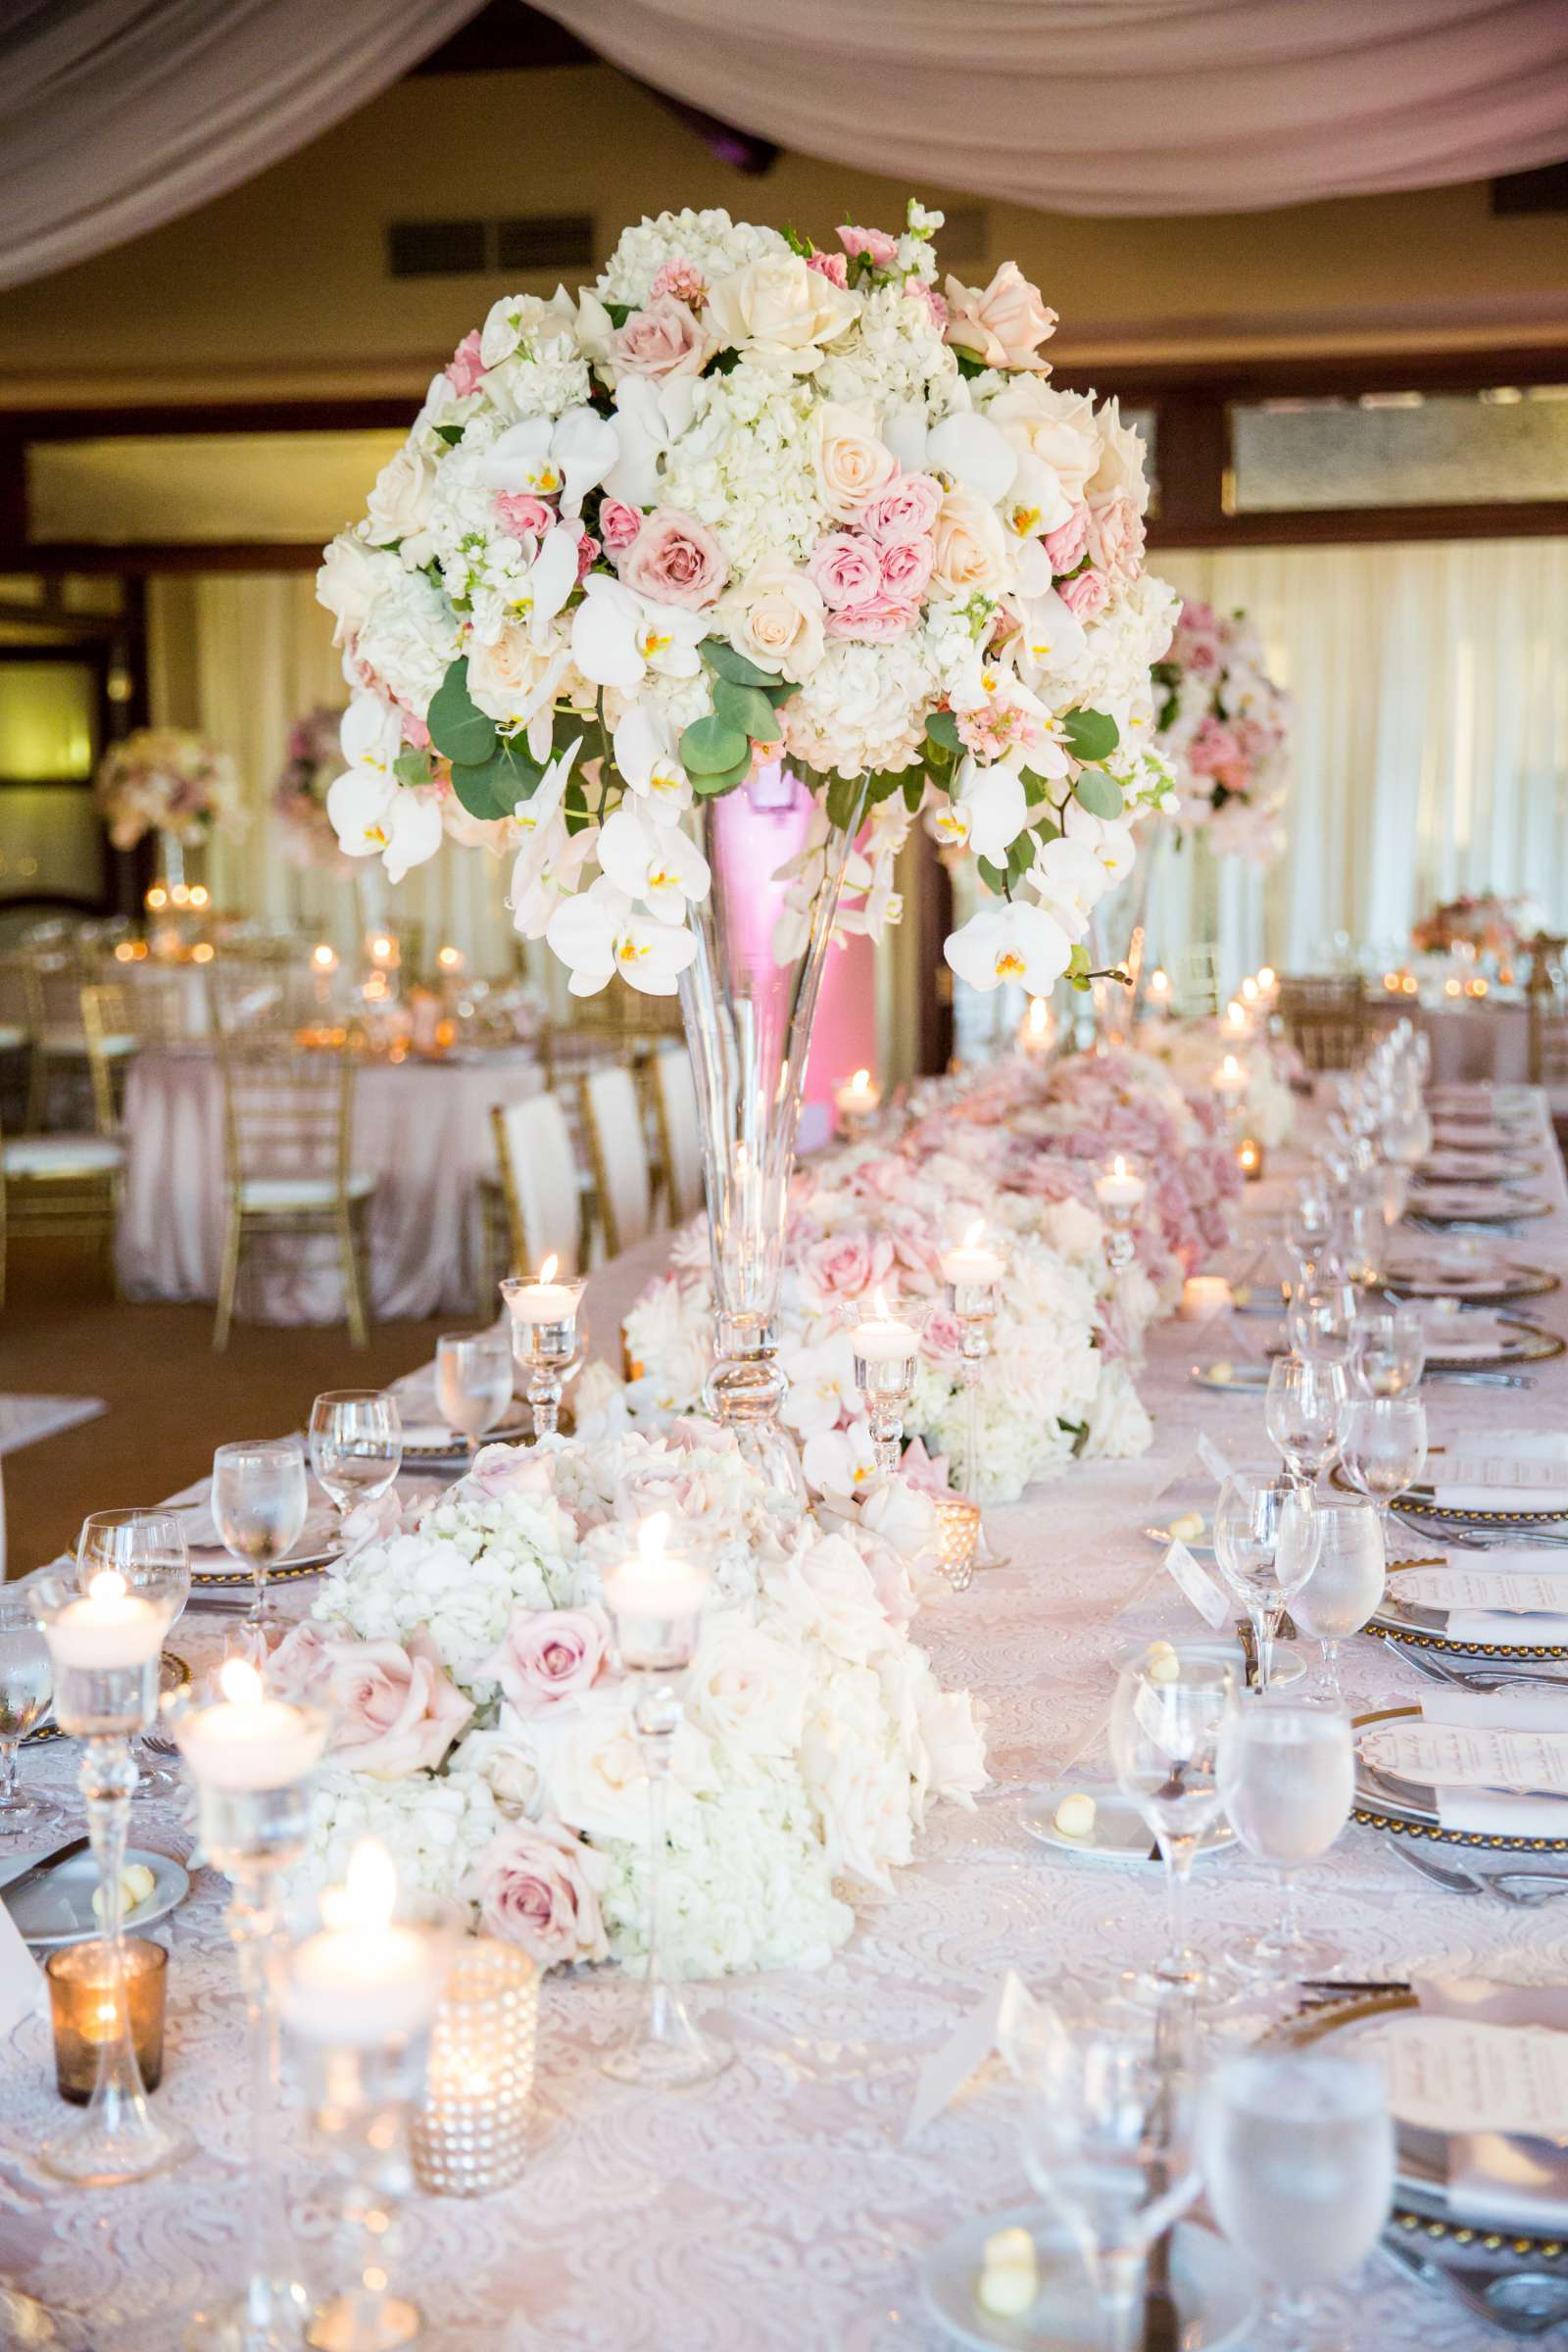 Fairbanks Ranch Country Club Wedding coordinated by Monarch Weddings, Gabriella and Kyle Wedding Photo #125 by True Photography